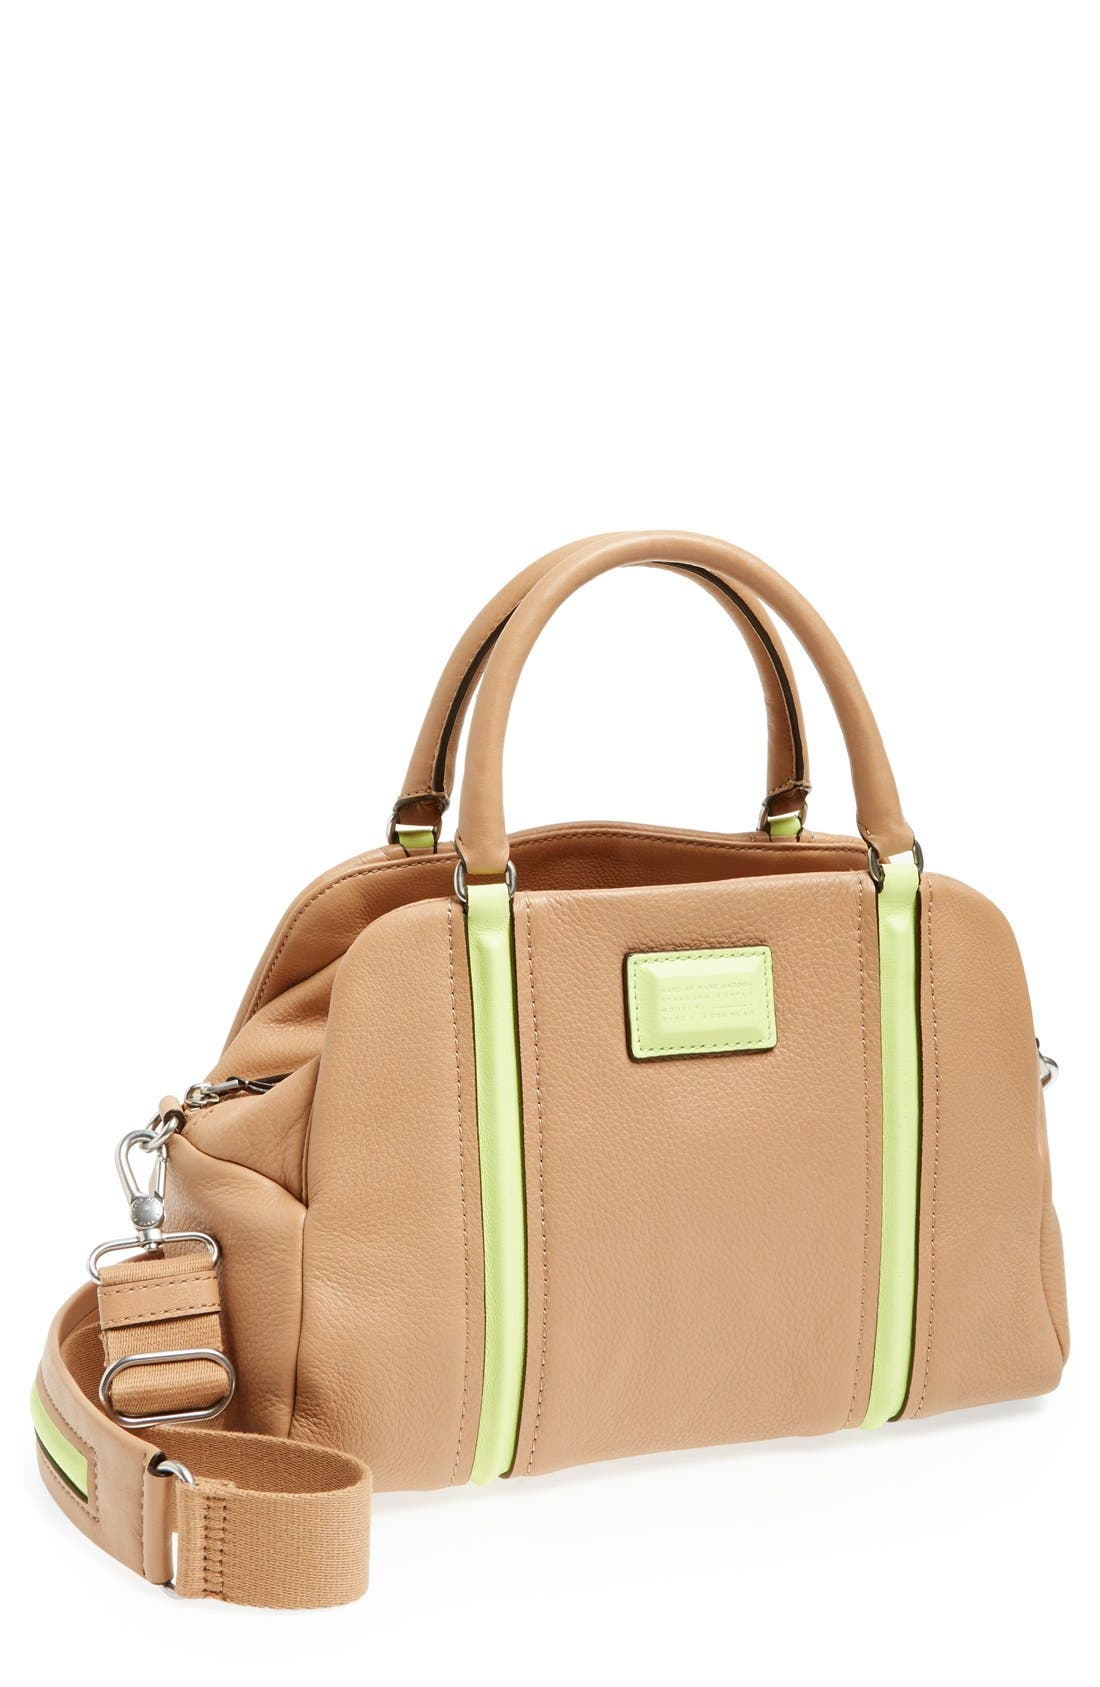 Main Image - MARC BY MARC JACOBS 'Q' Leather Satchel